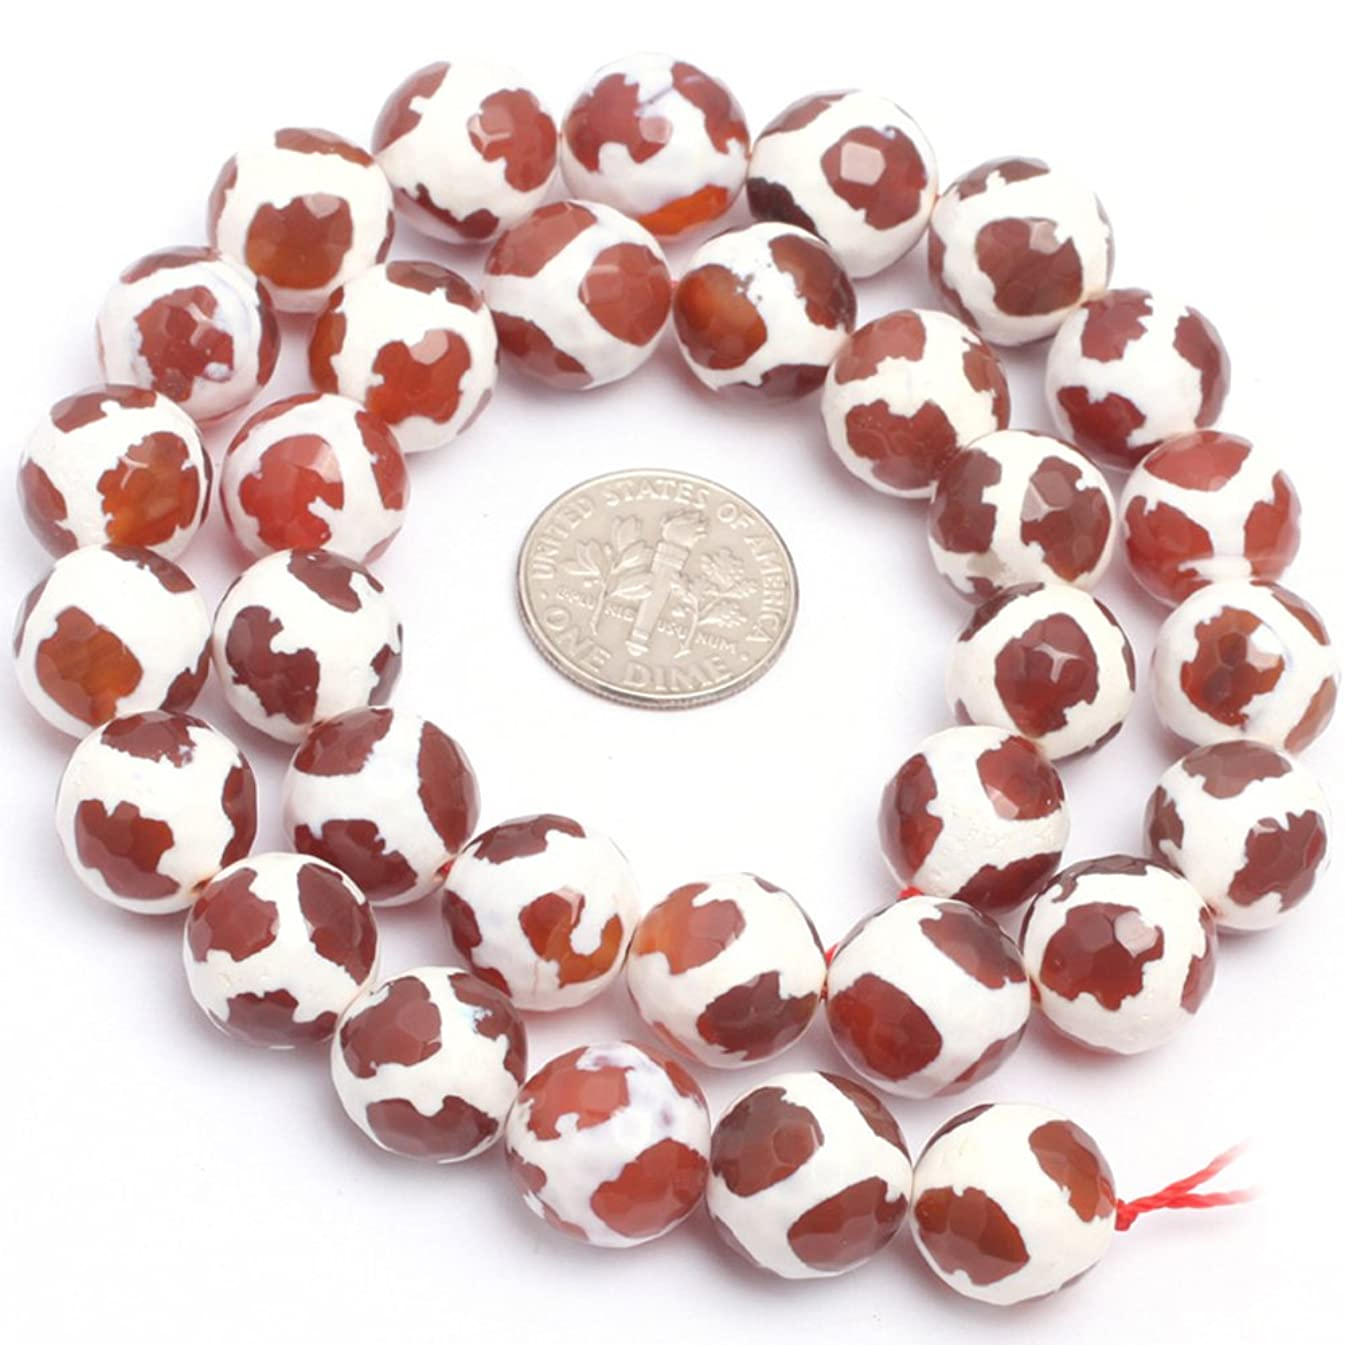 Fire Agate Beads for Jewelry Making Gemstone Semi Precious 12mm Round Faceted Stripe Football Red 15